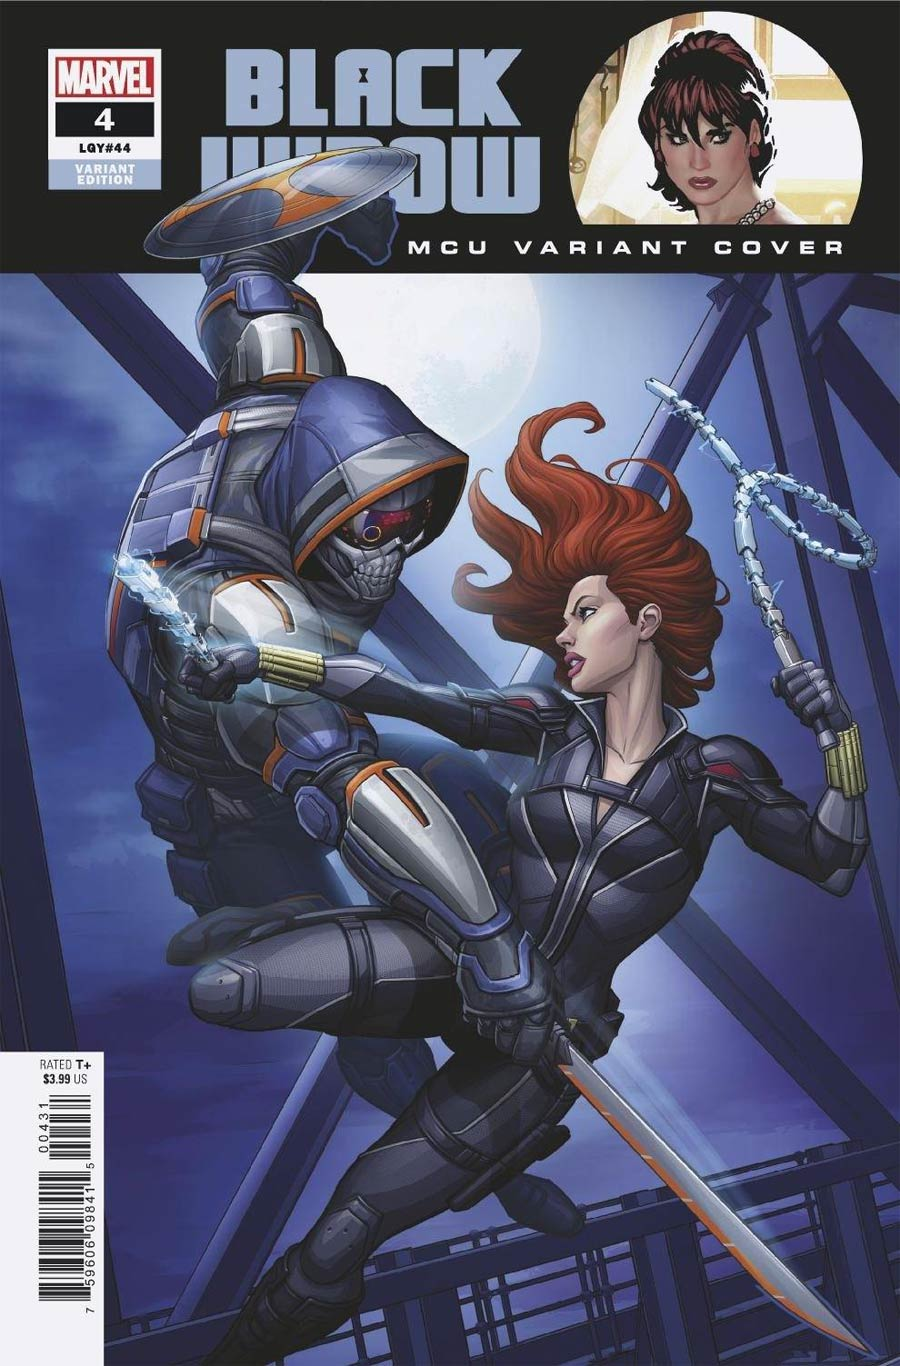 Black Widow Vol 8 #4 Cover C Variant Patrick Brown MCU Cover